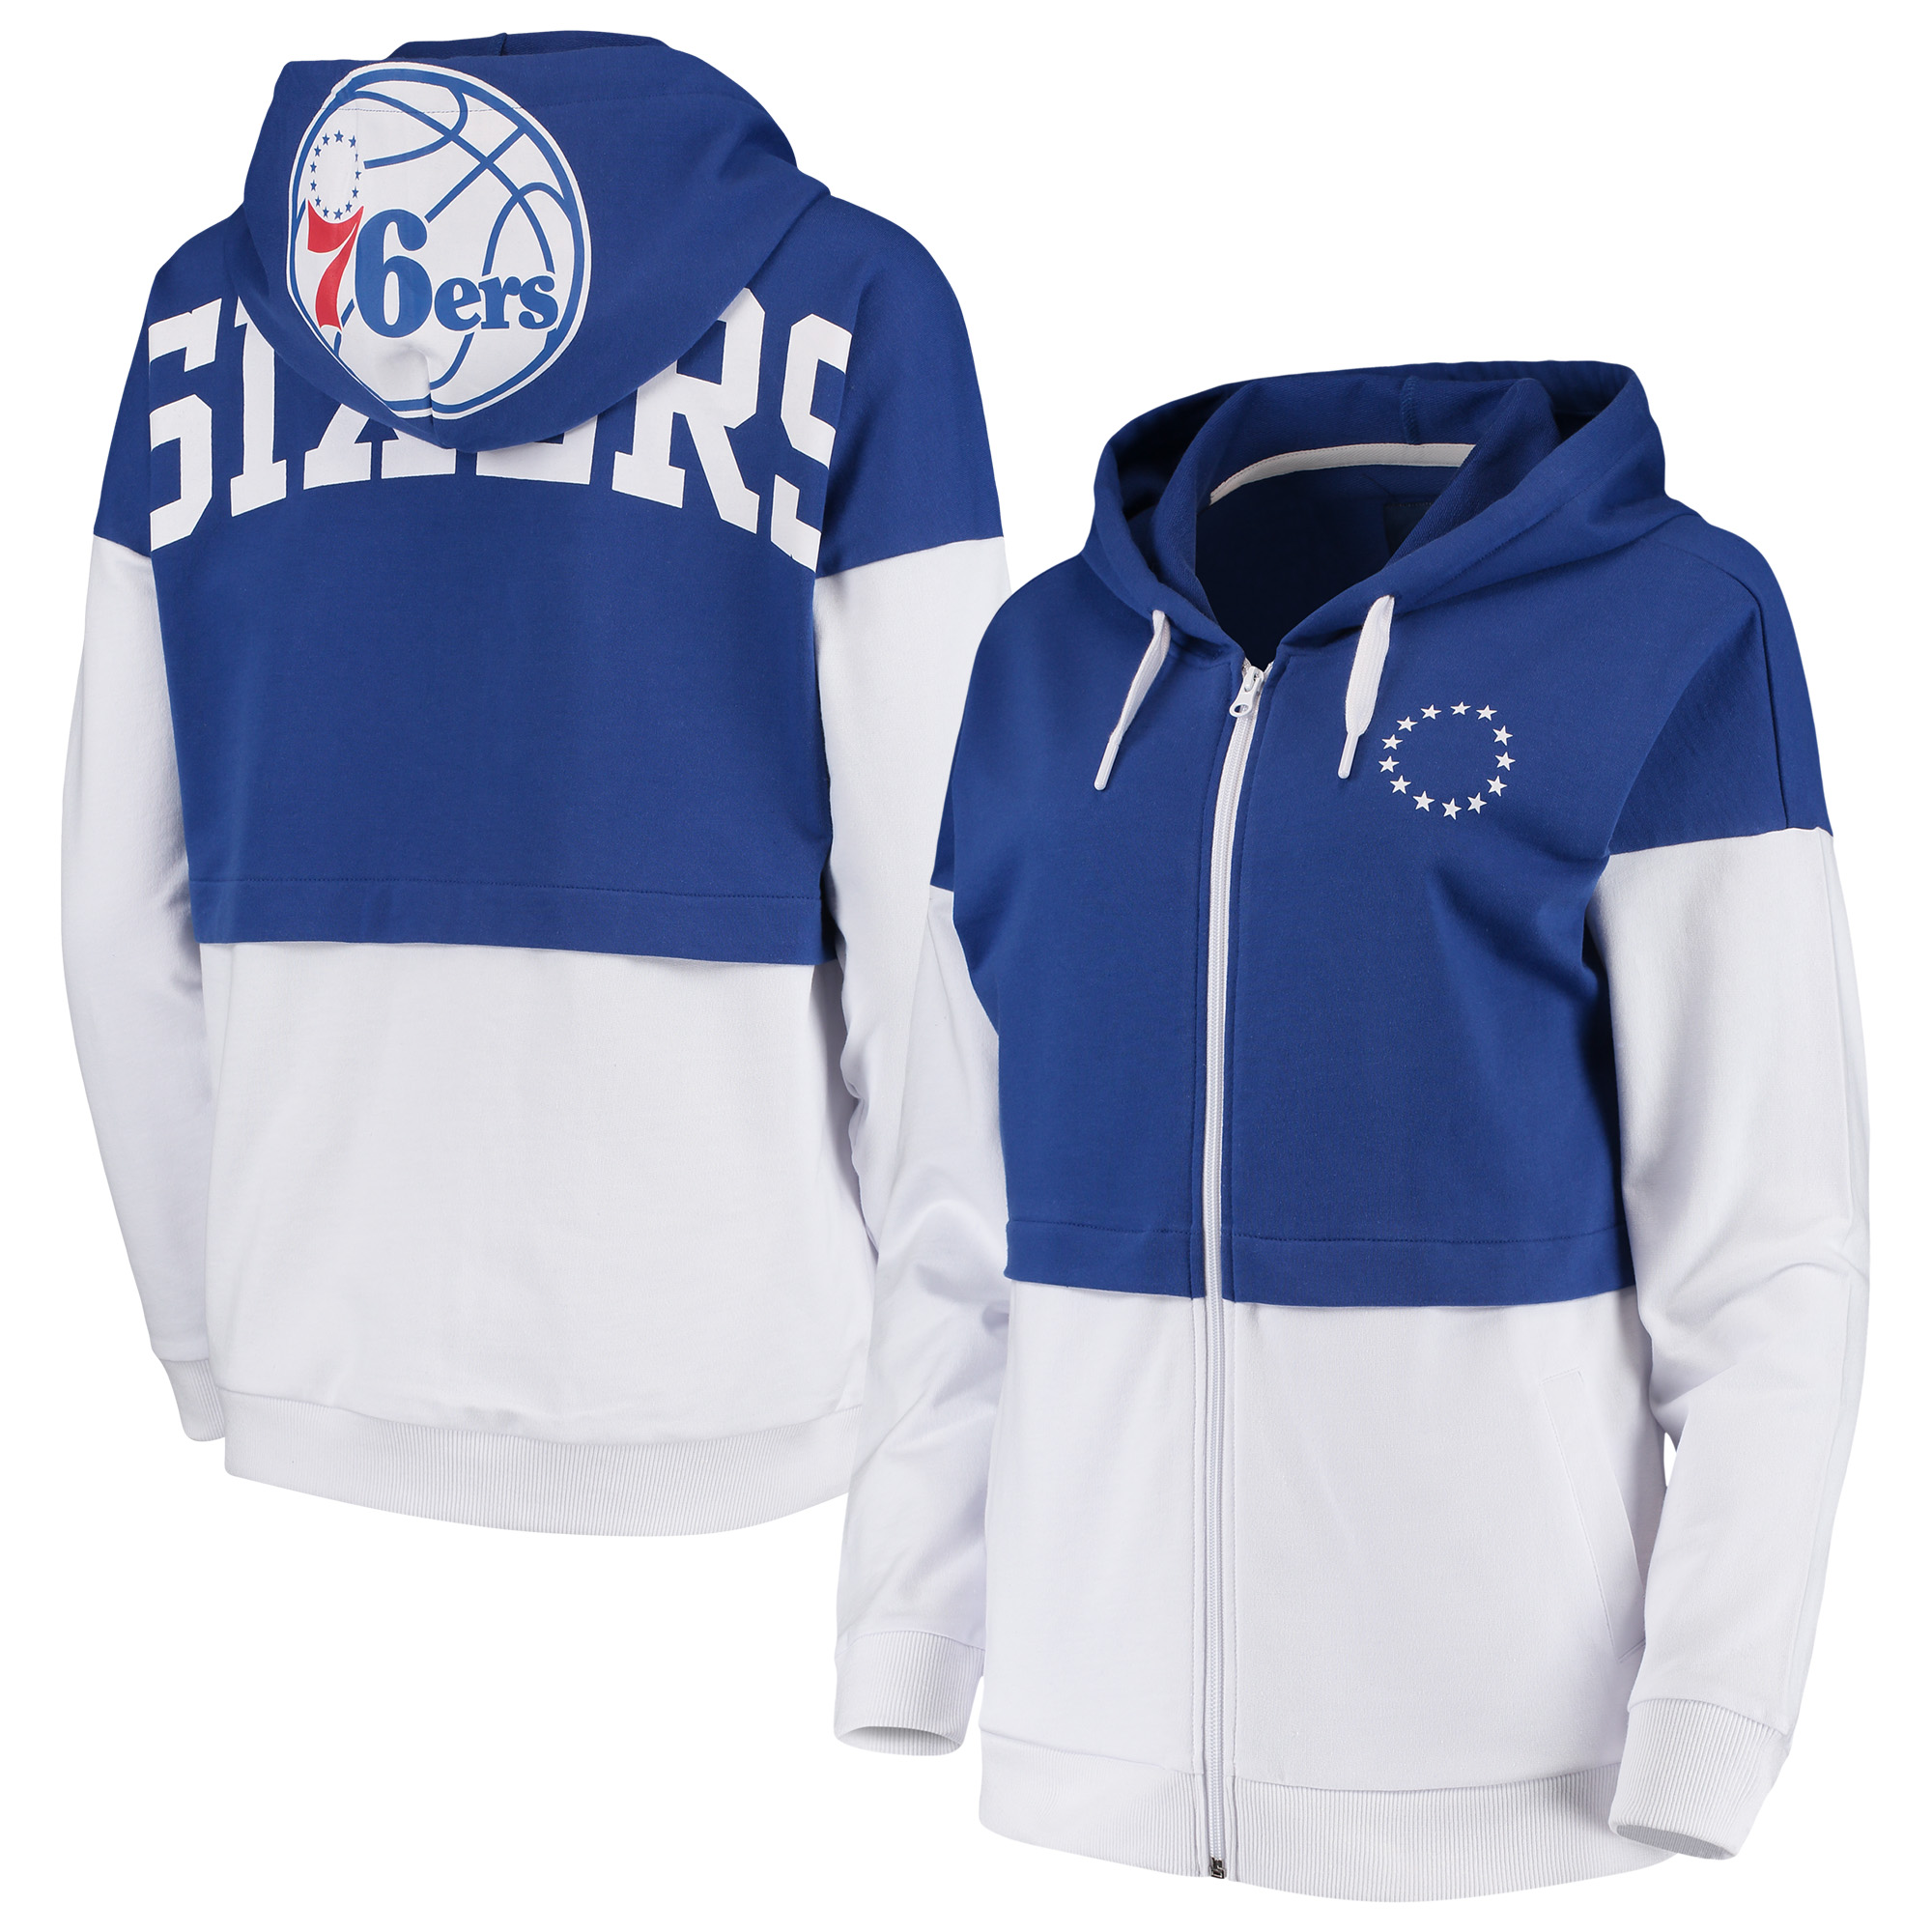 Philadelphia 76ers G-III 4Her by Carl Banks Women's Game Changer French Terry Colorblock Full-Zip Hoodie - Royal/White